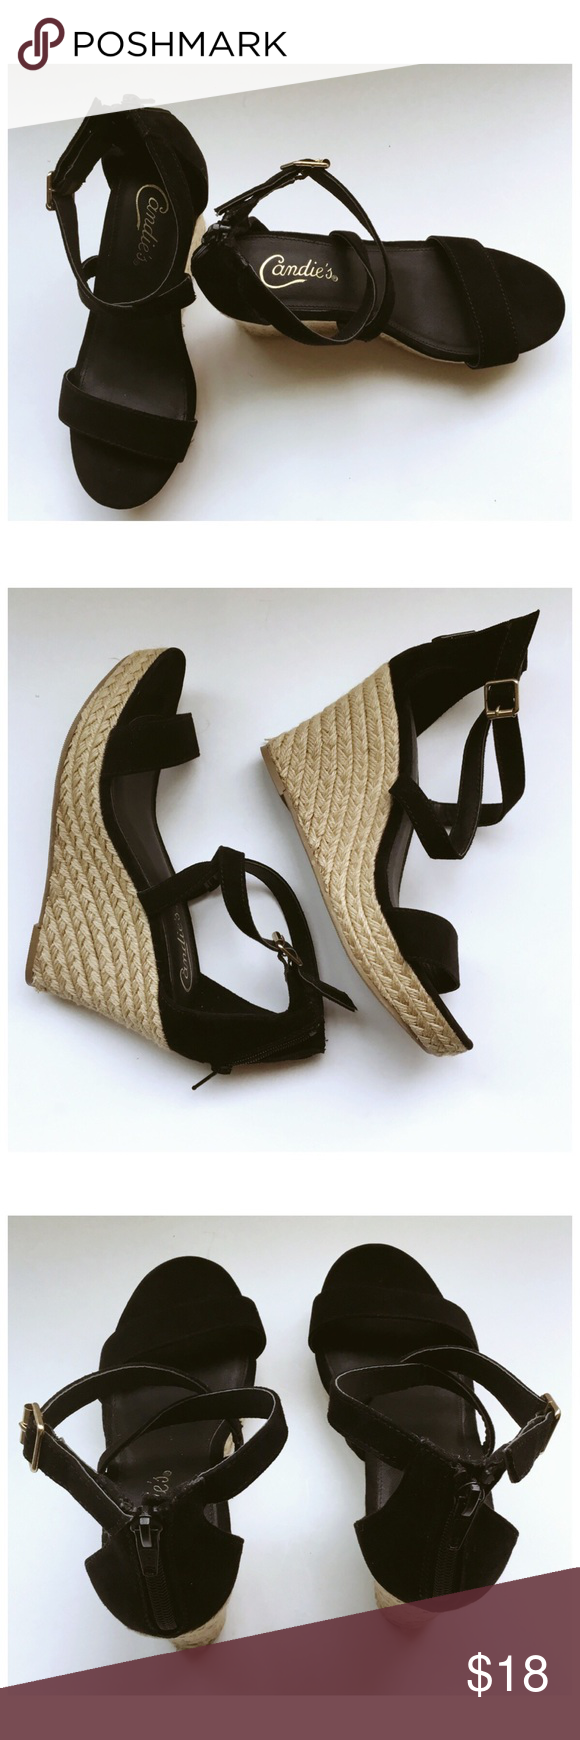 6396e3c41906a8 Candie s wedge heels size 7 Candie s suede Sandal with rope wedge heel has  a little wear shown in last picture. Size 7 Candie s Shoes Sandals